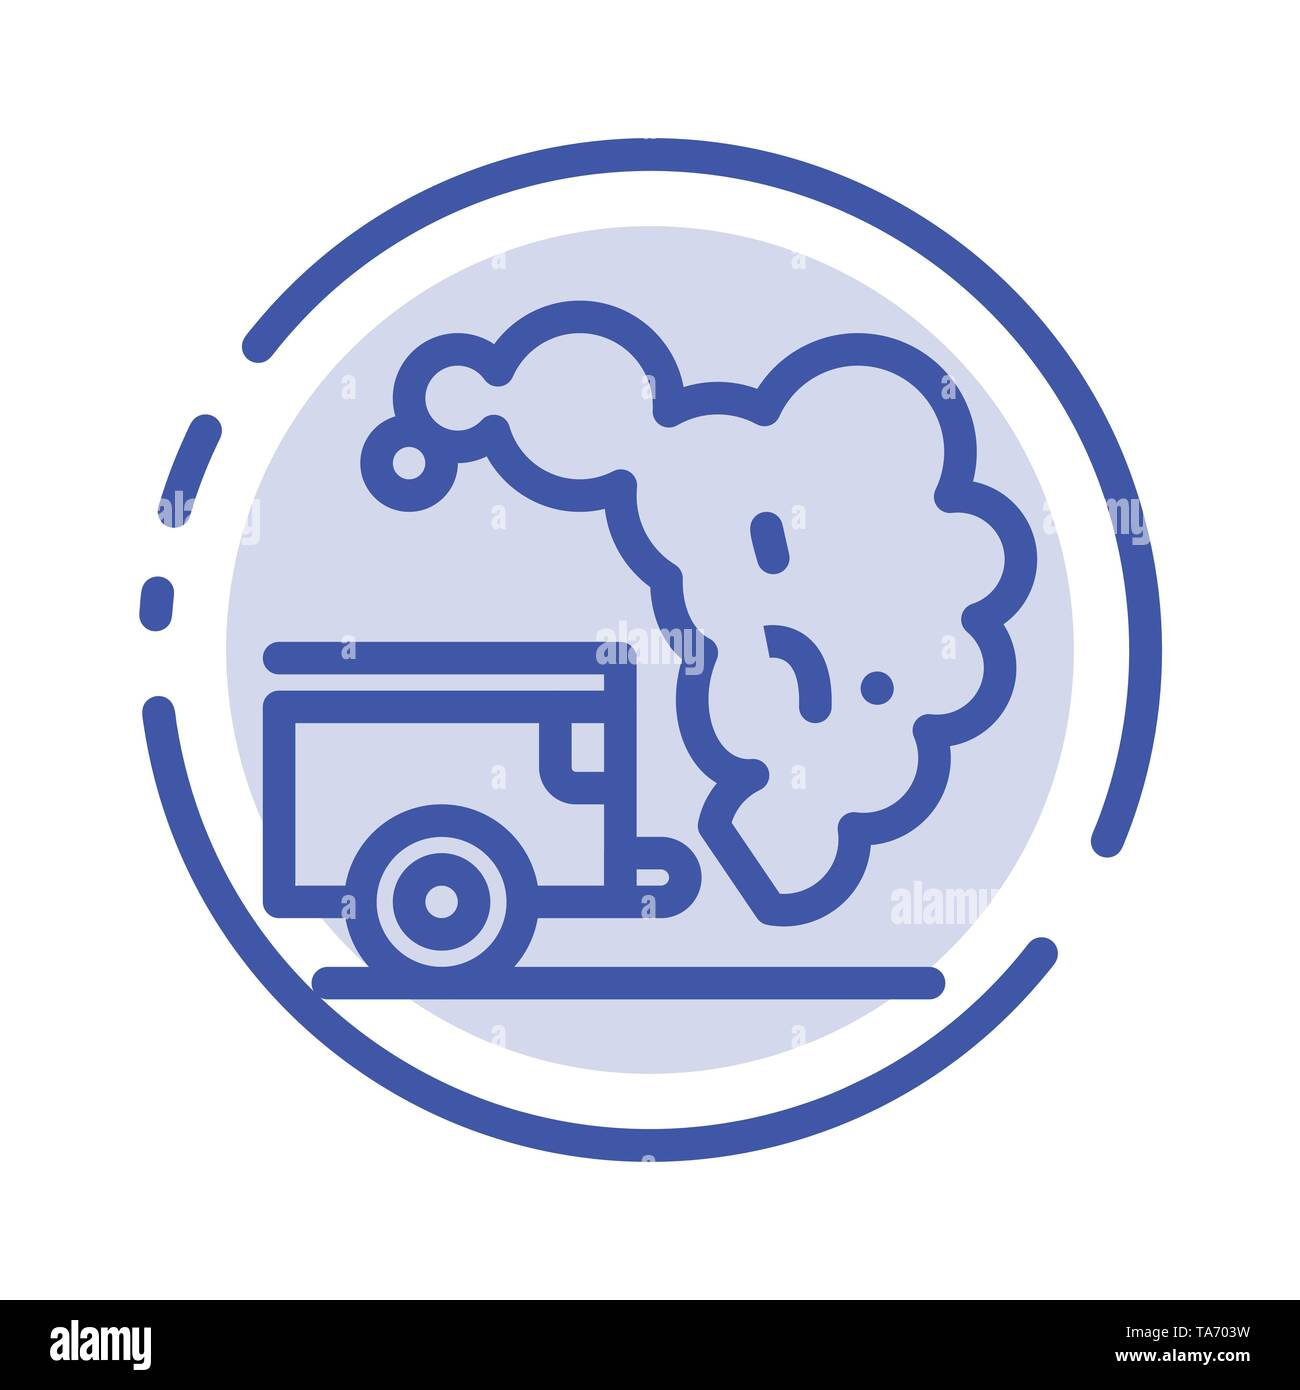 Dump, Environment, Garbage, Pollution Blue Dotted Line Line Icon - Stock Image